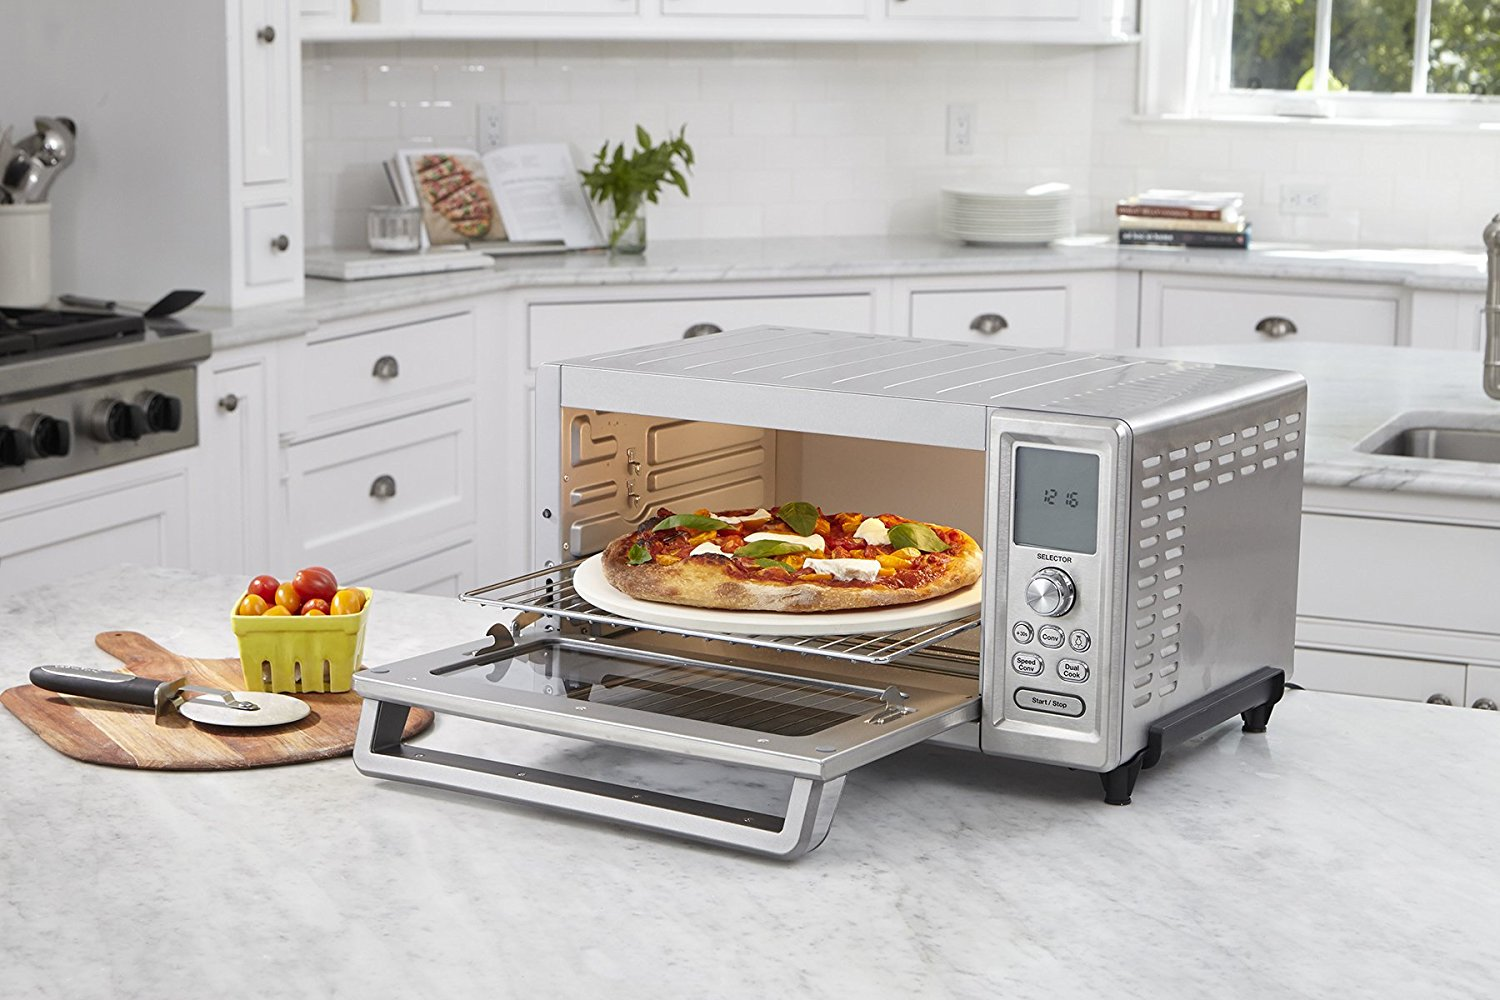 Cuisinart TOB-260N1 Chef's Convection Toaster Oven view